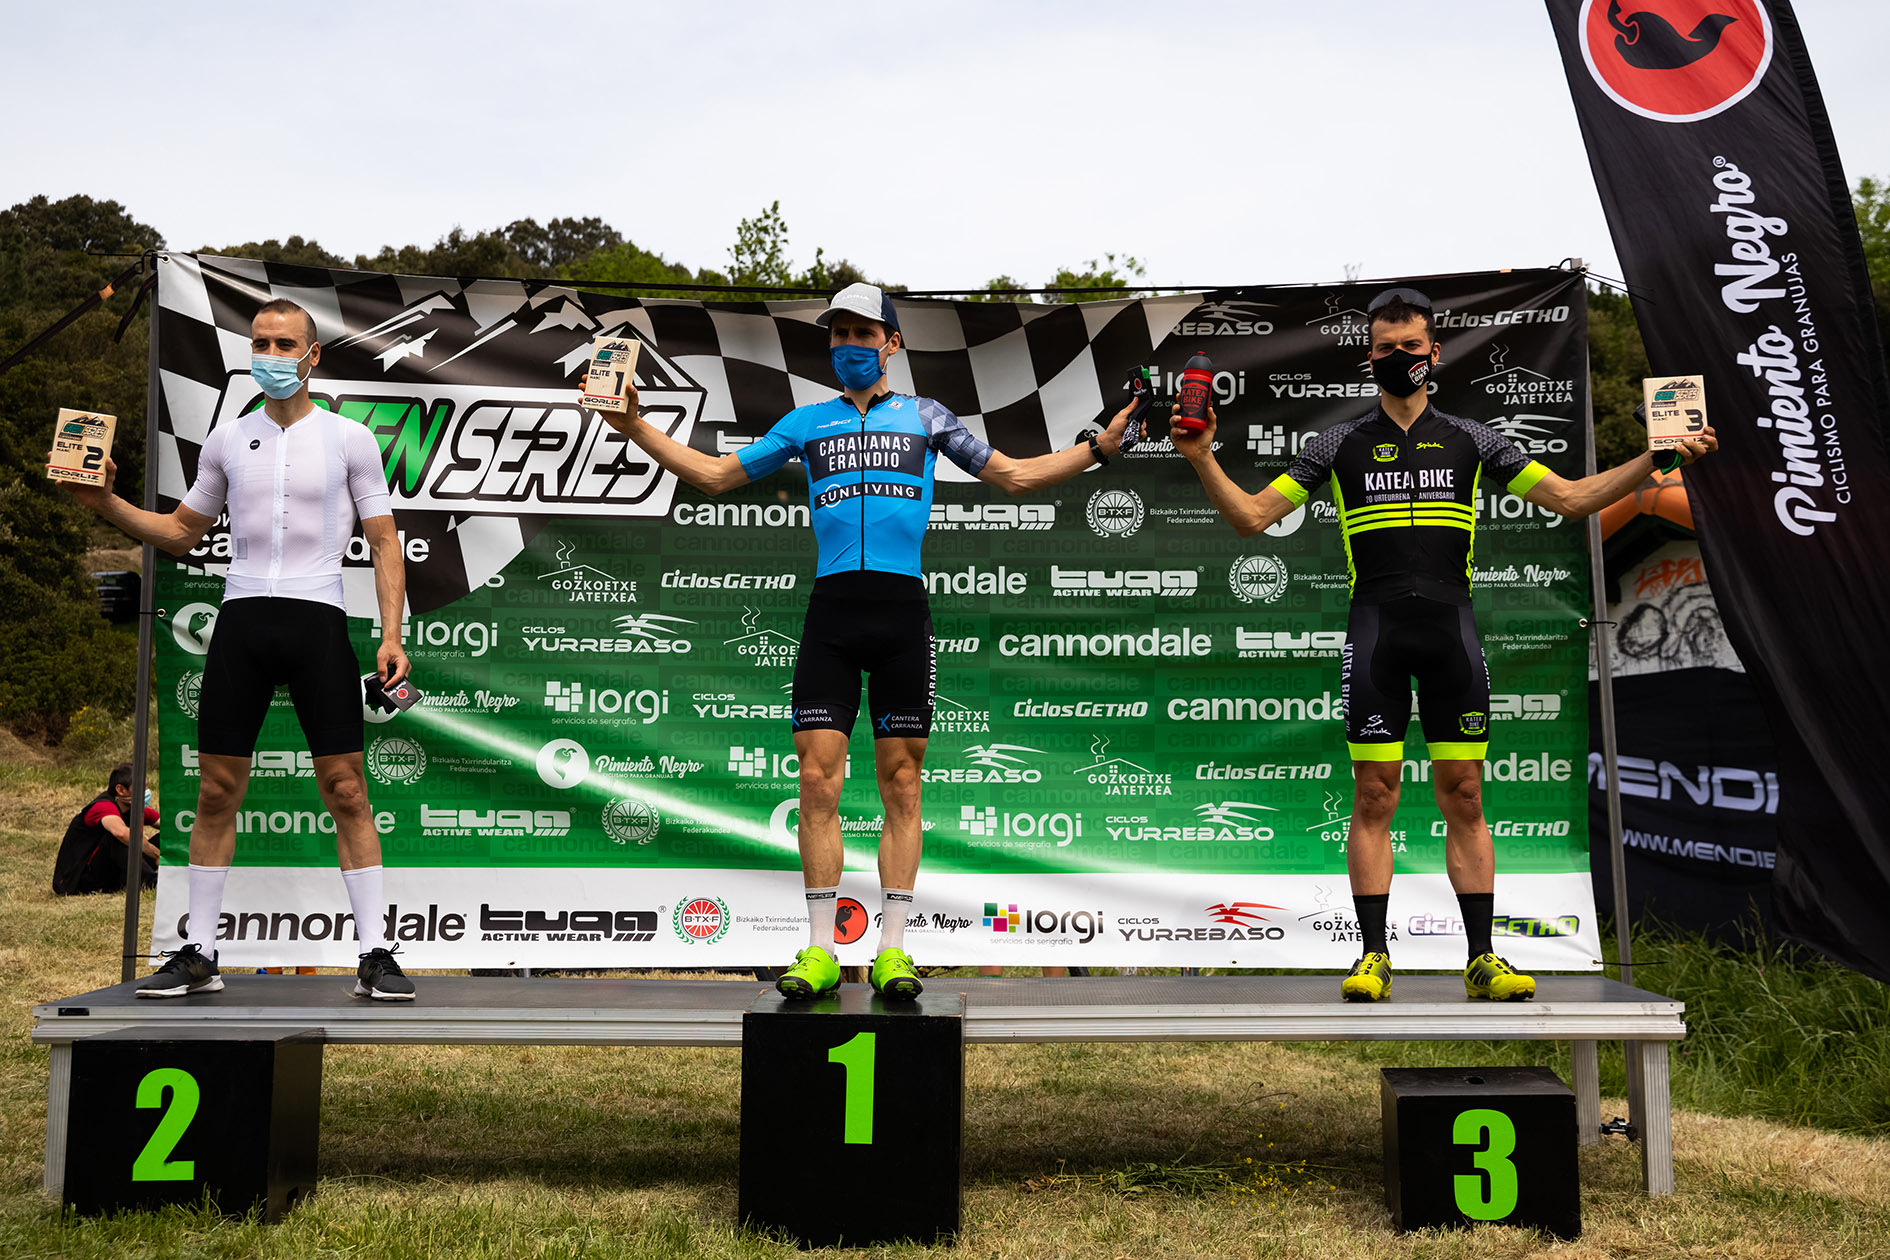 Green Series Challenge XCO powered by Cannondale podium Elitejpg